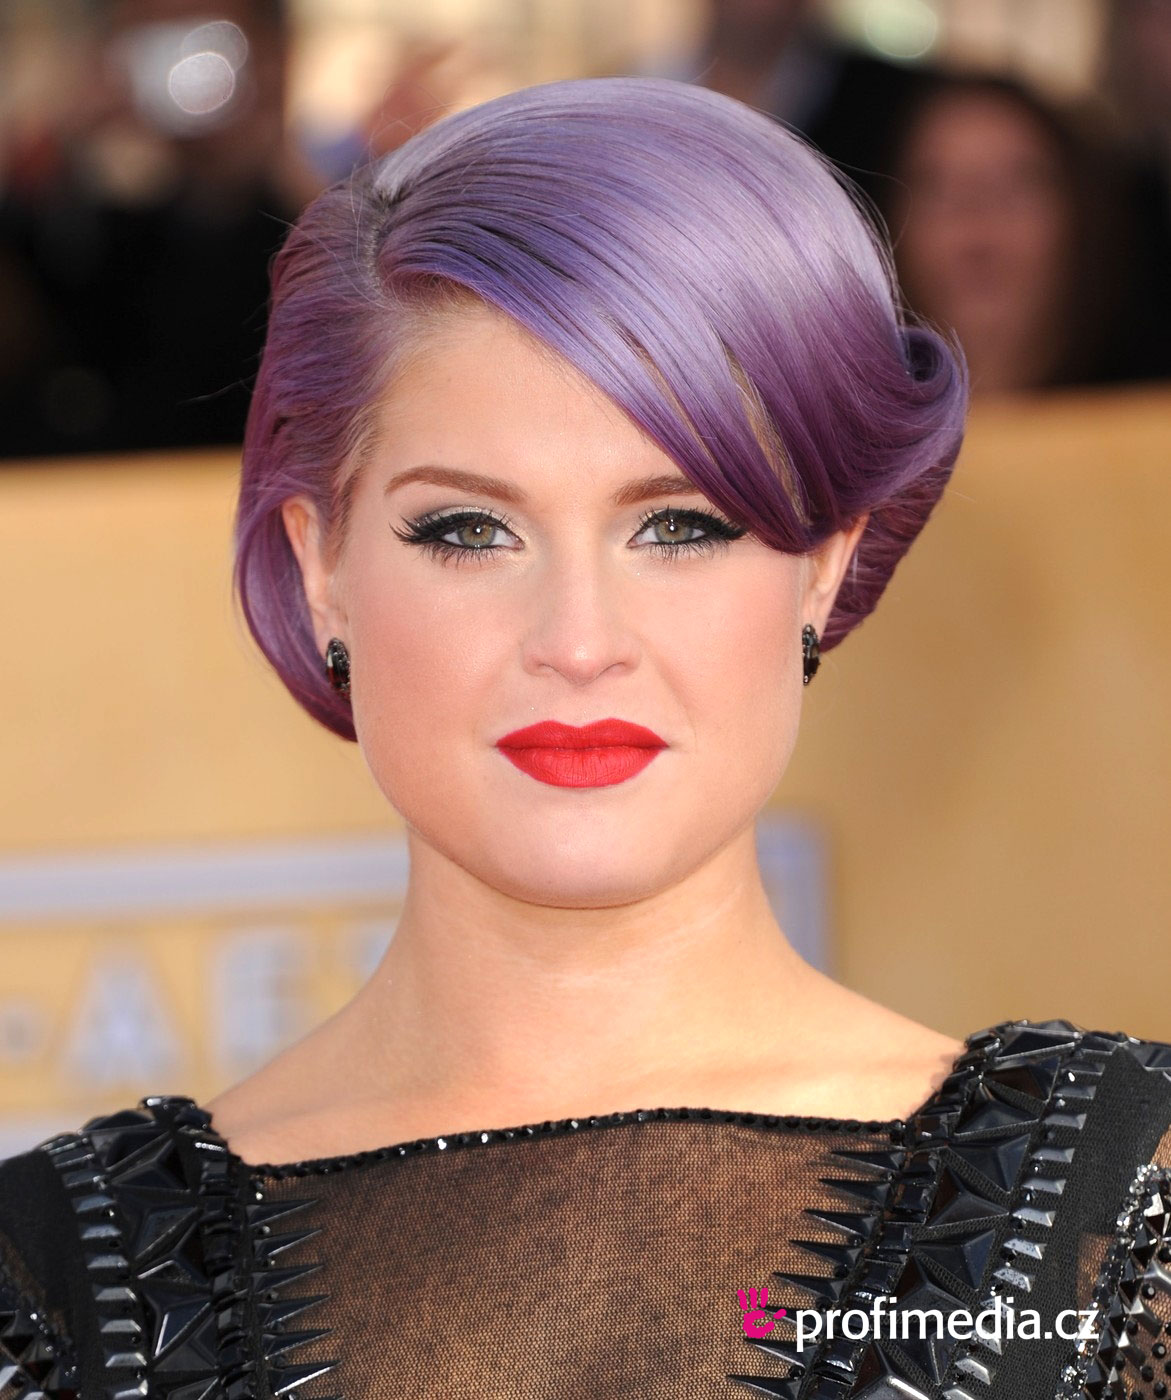 Kelly Osborne is an example of a celeb with an triangular face